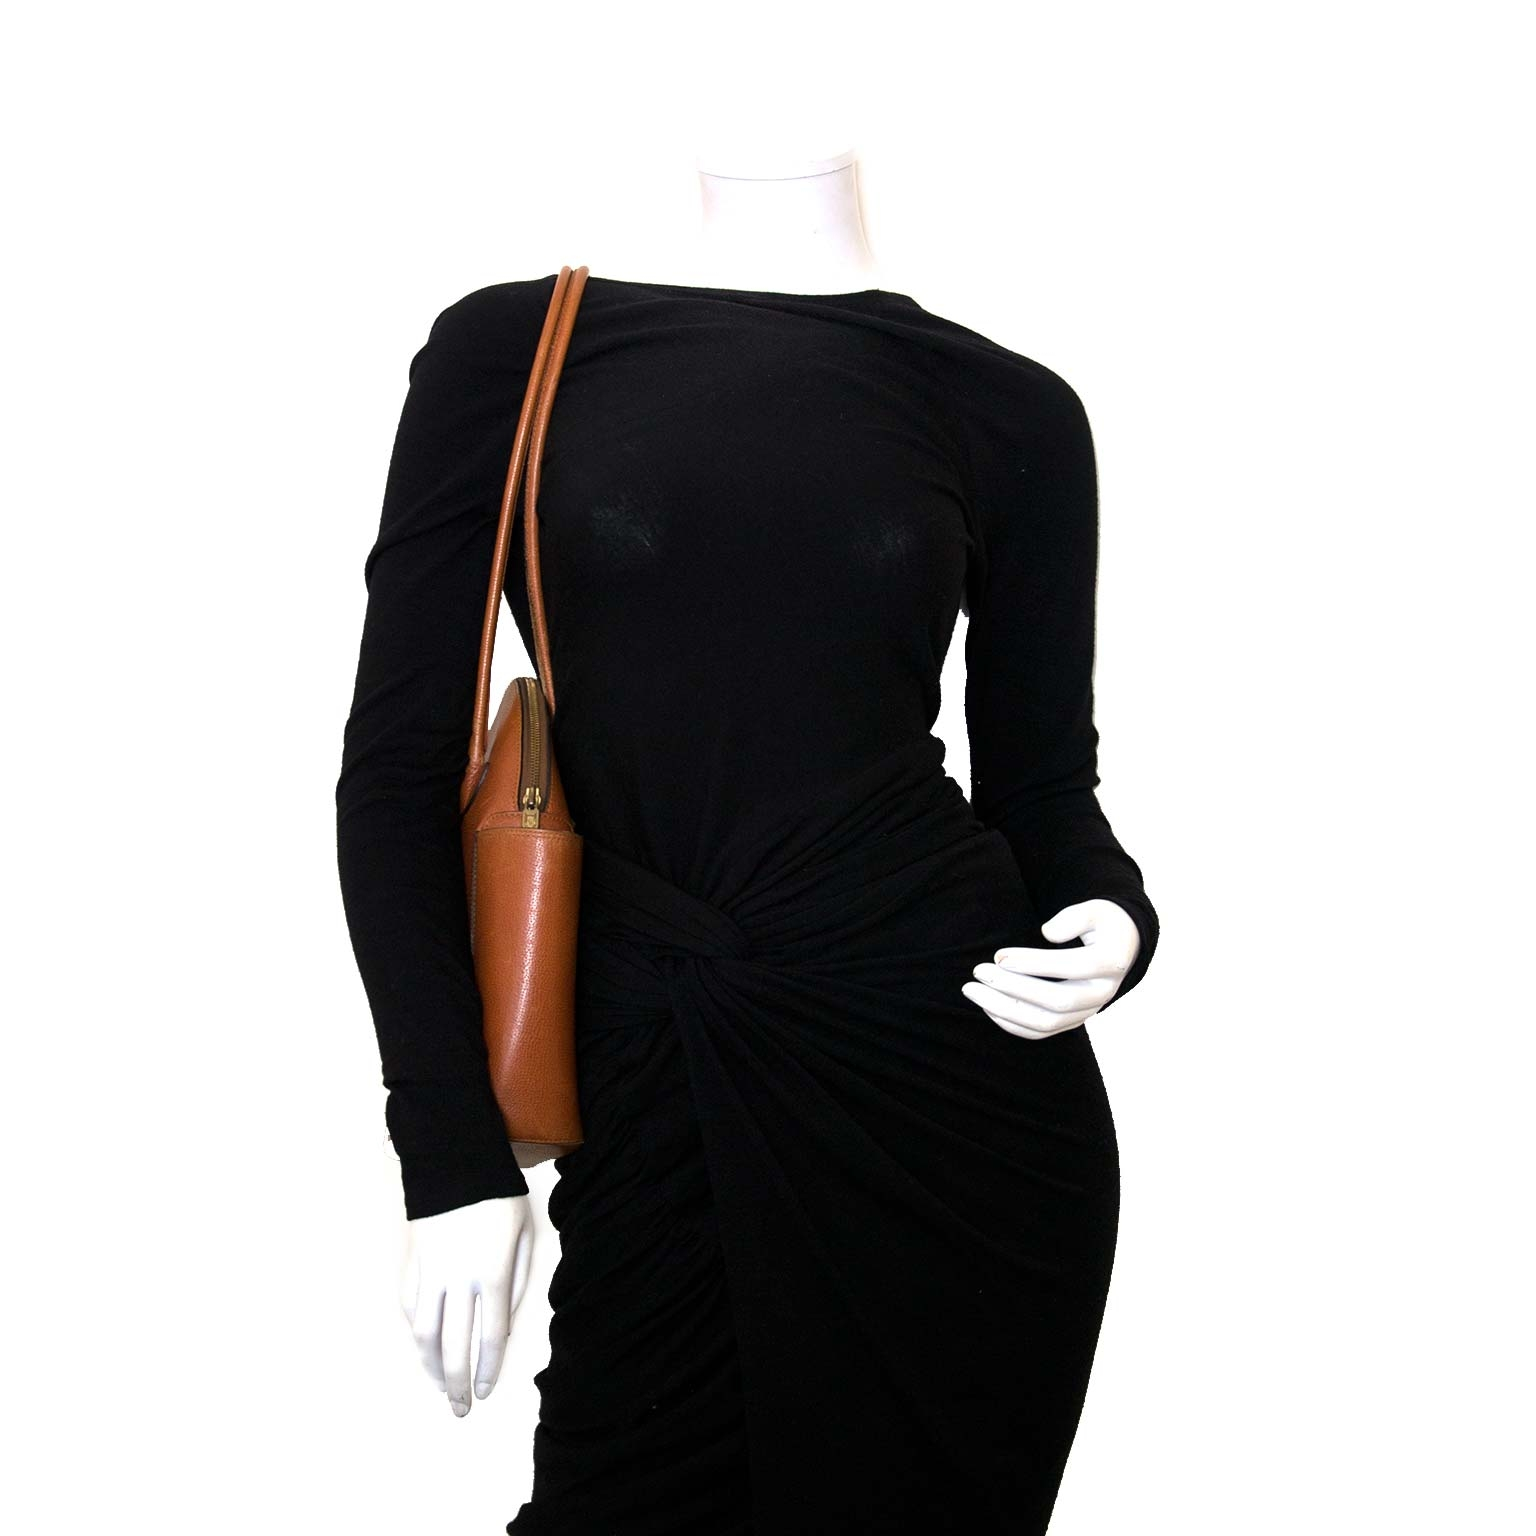 Vintage Delvaux Mousson bag at the authentic Labellov webshop.